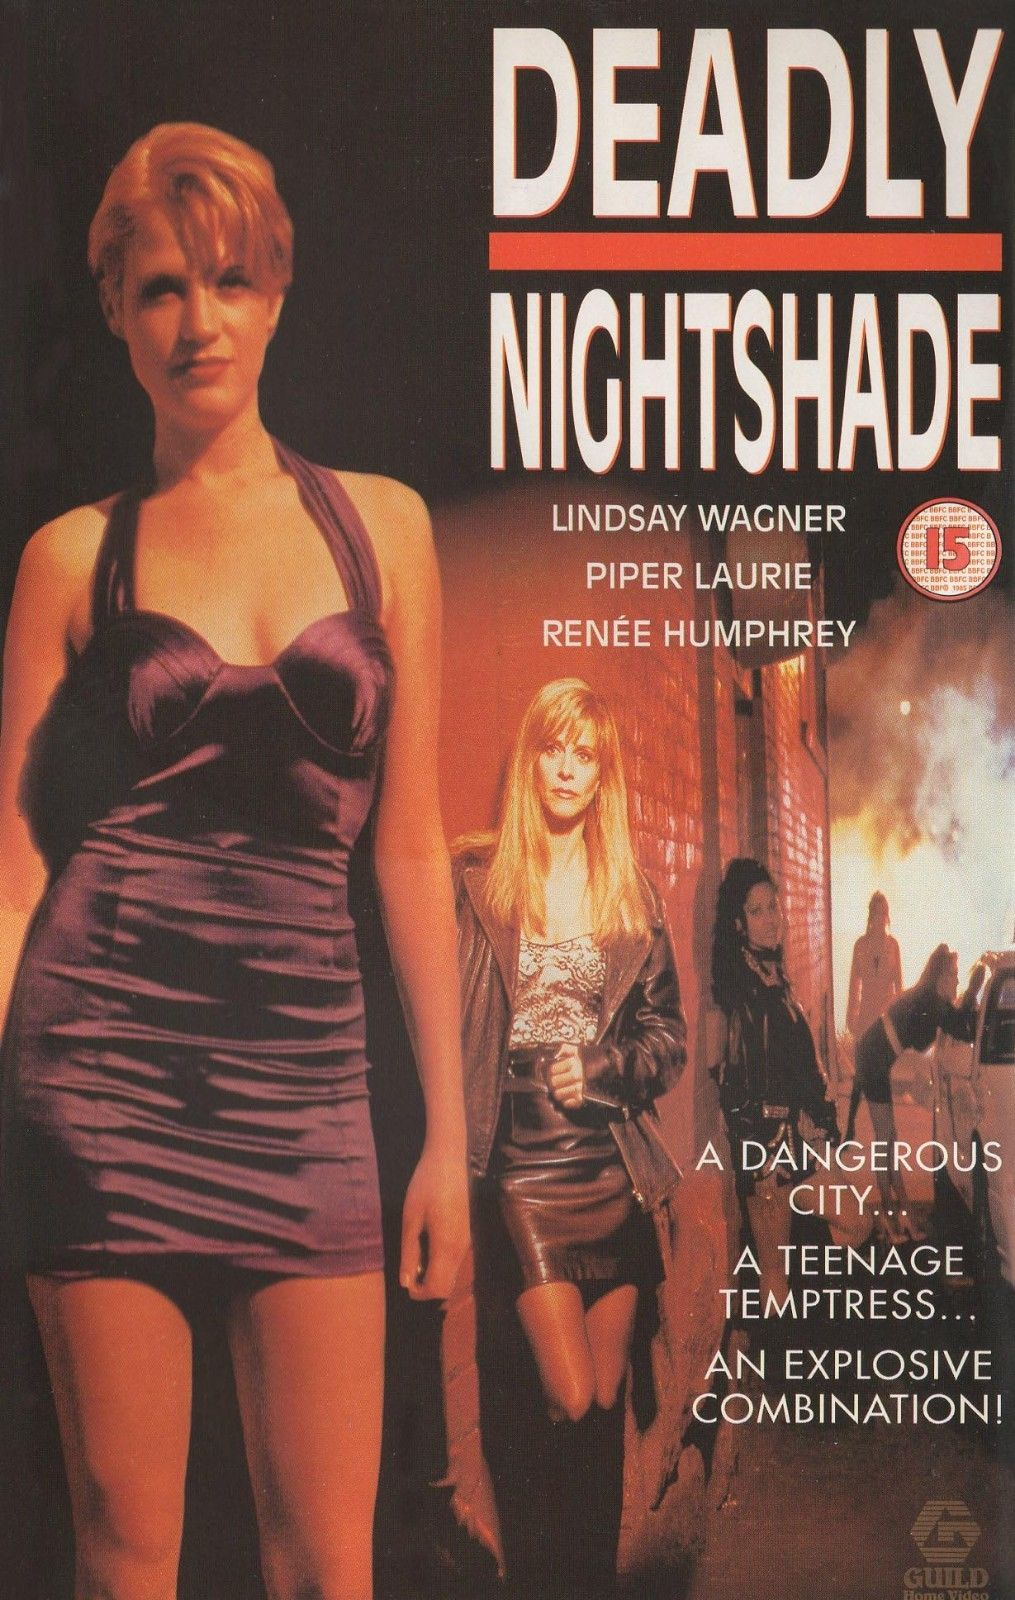 DEADLY NIGHTSHADE 1995 LINDSAY 'Bionic Woman' WAGNER, PIPER LAURIE, RENEE HUMPHREY